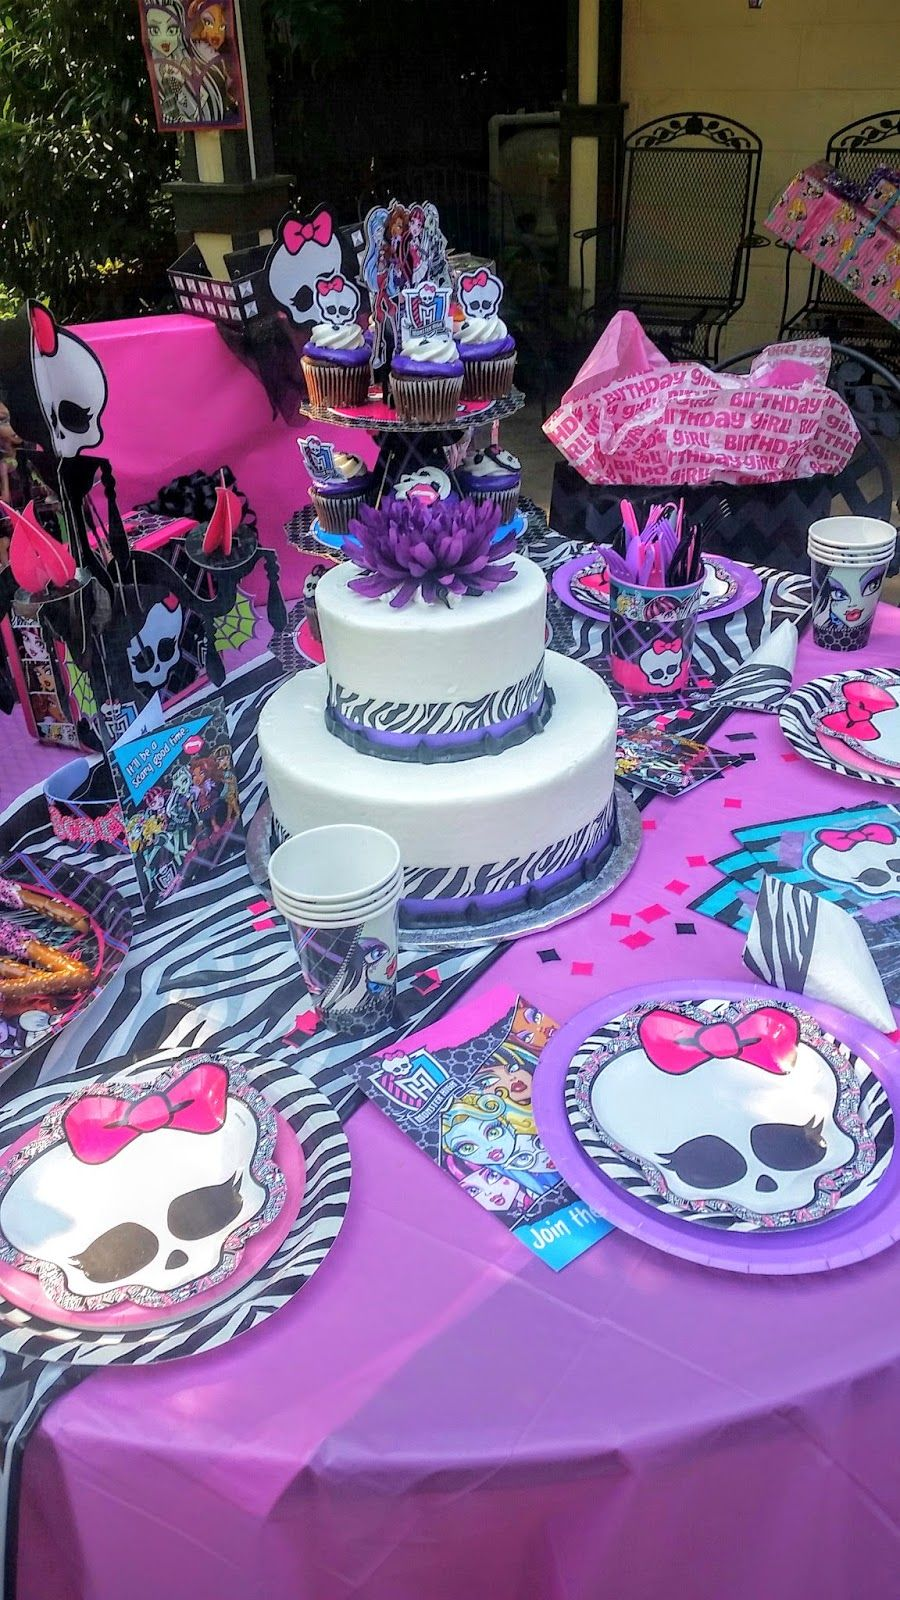 27 Beautiful Image Of Walmart Bakery Cakes For Birthdays Birthday Cake From